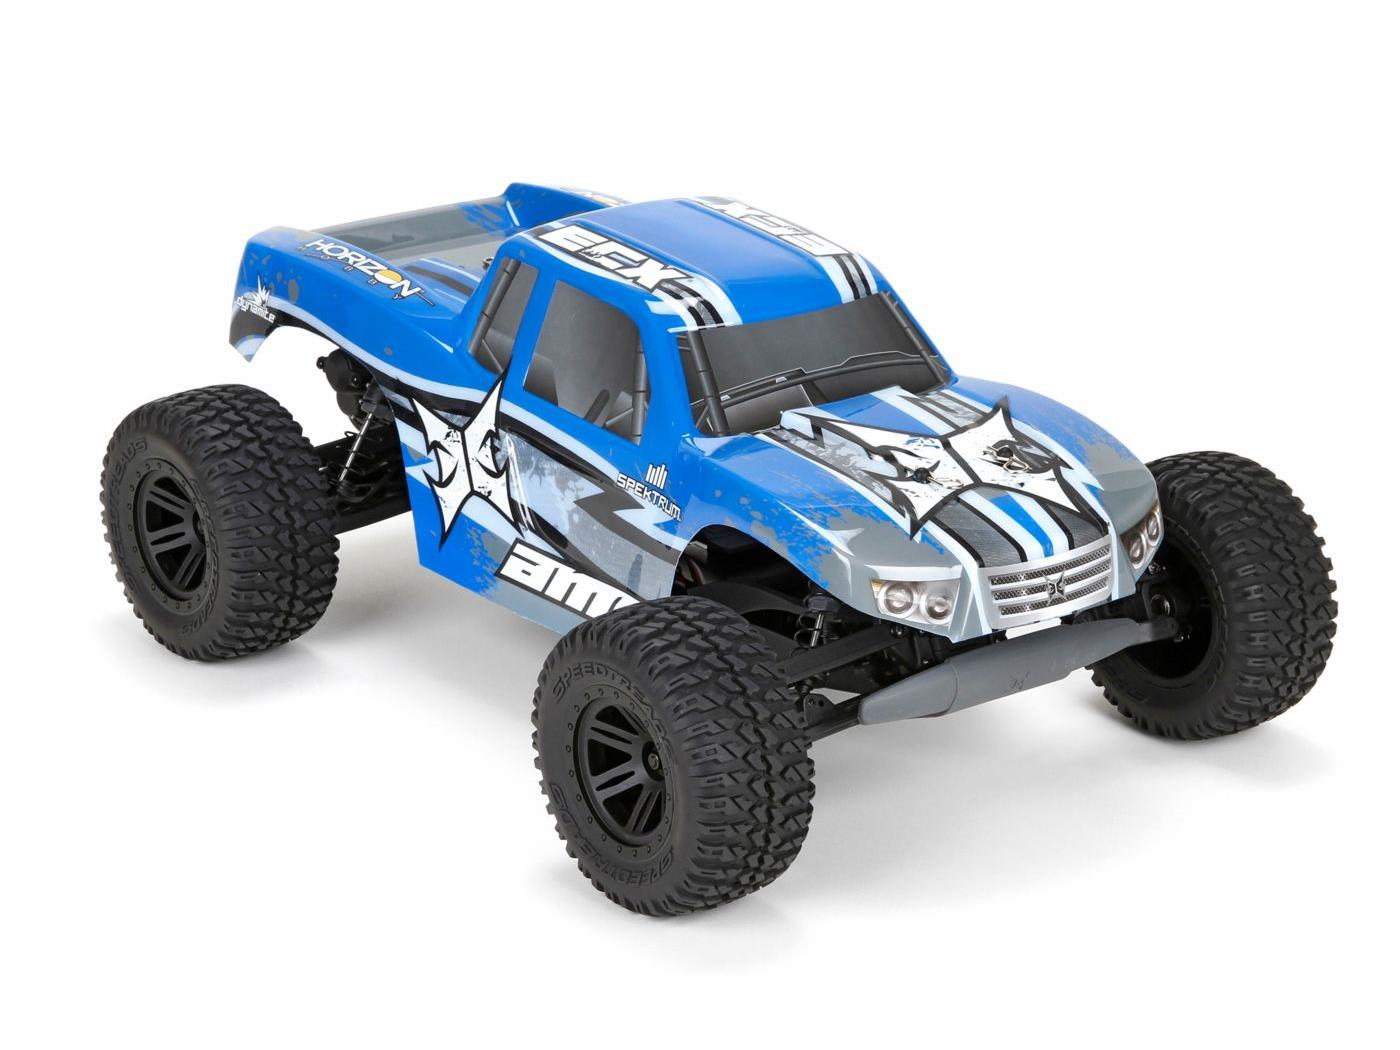 ECX AMP MT 1:10 2wd Monster Truck: Kit ECX03034I